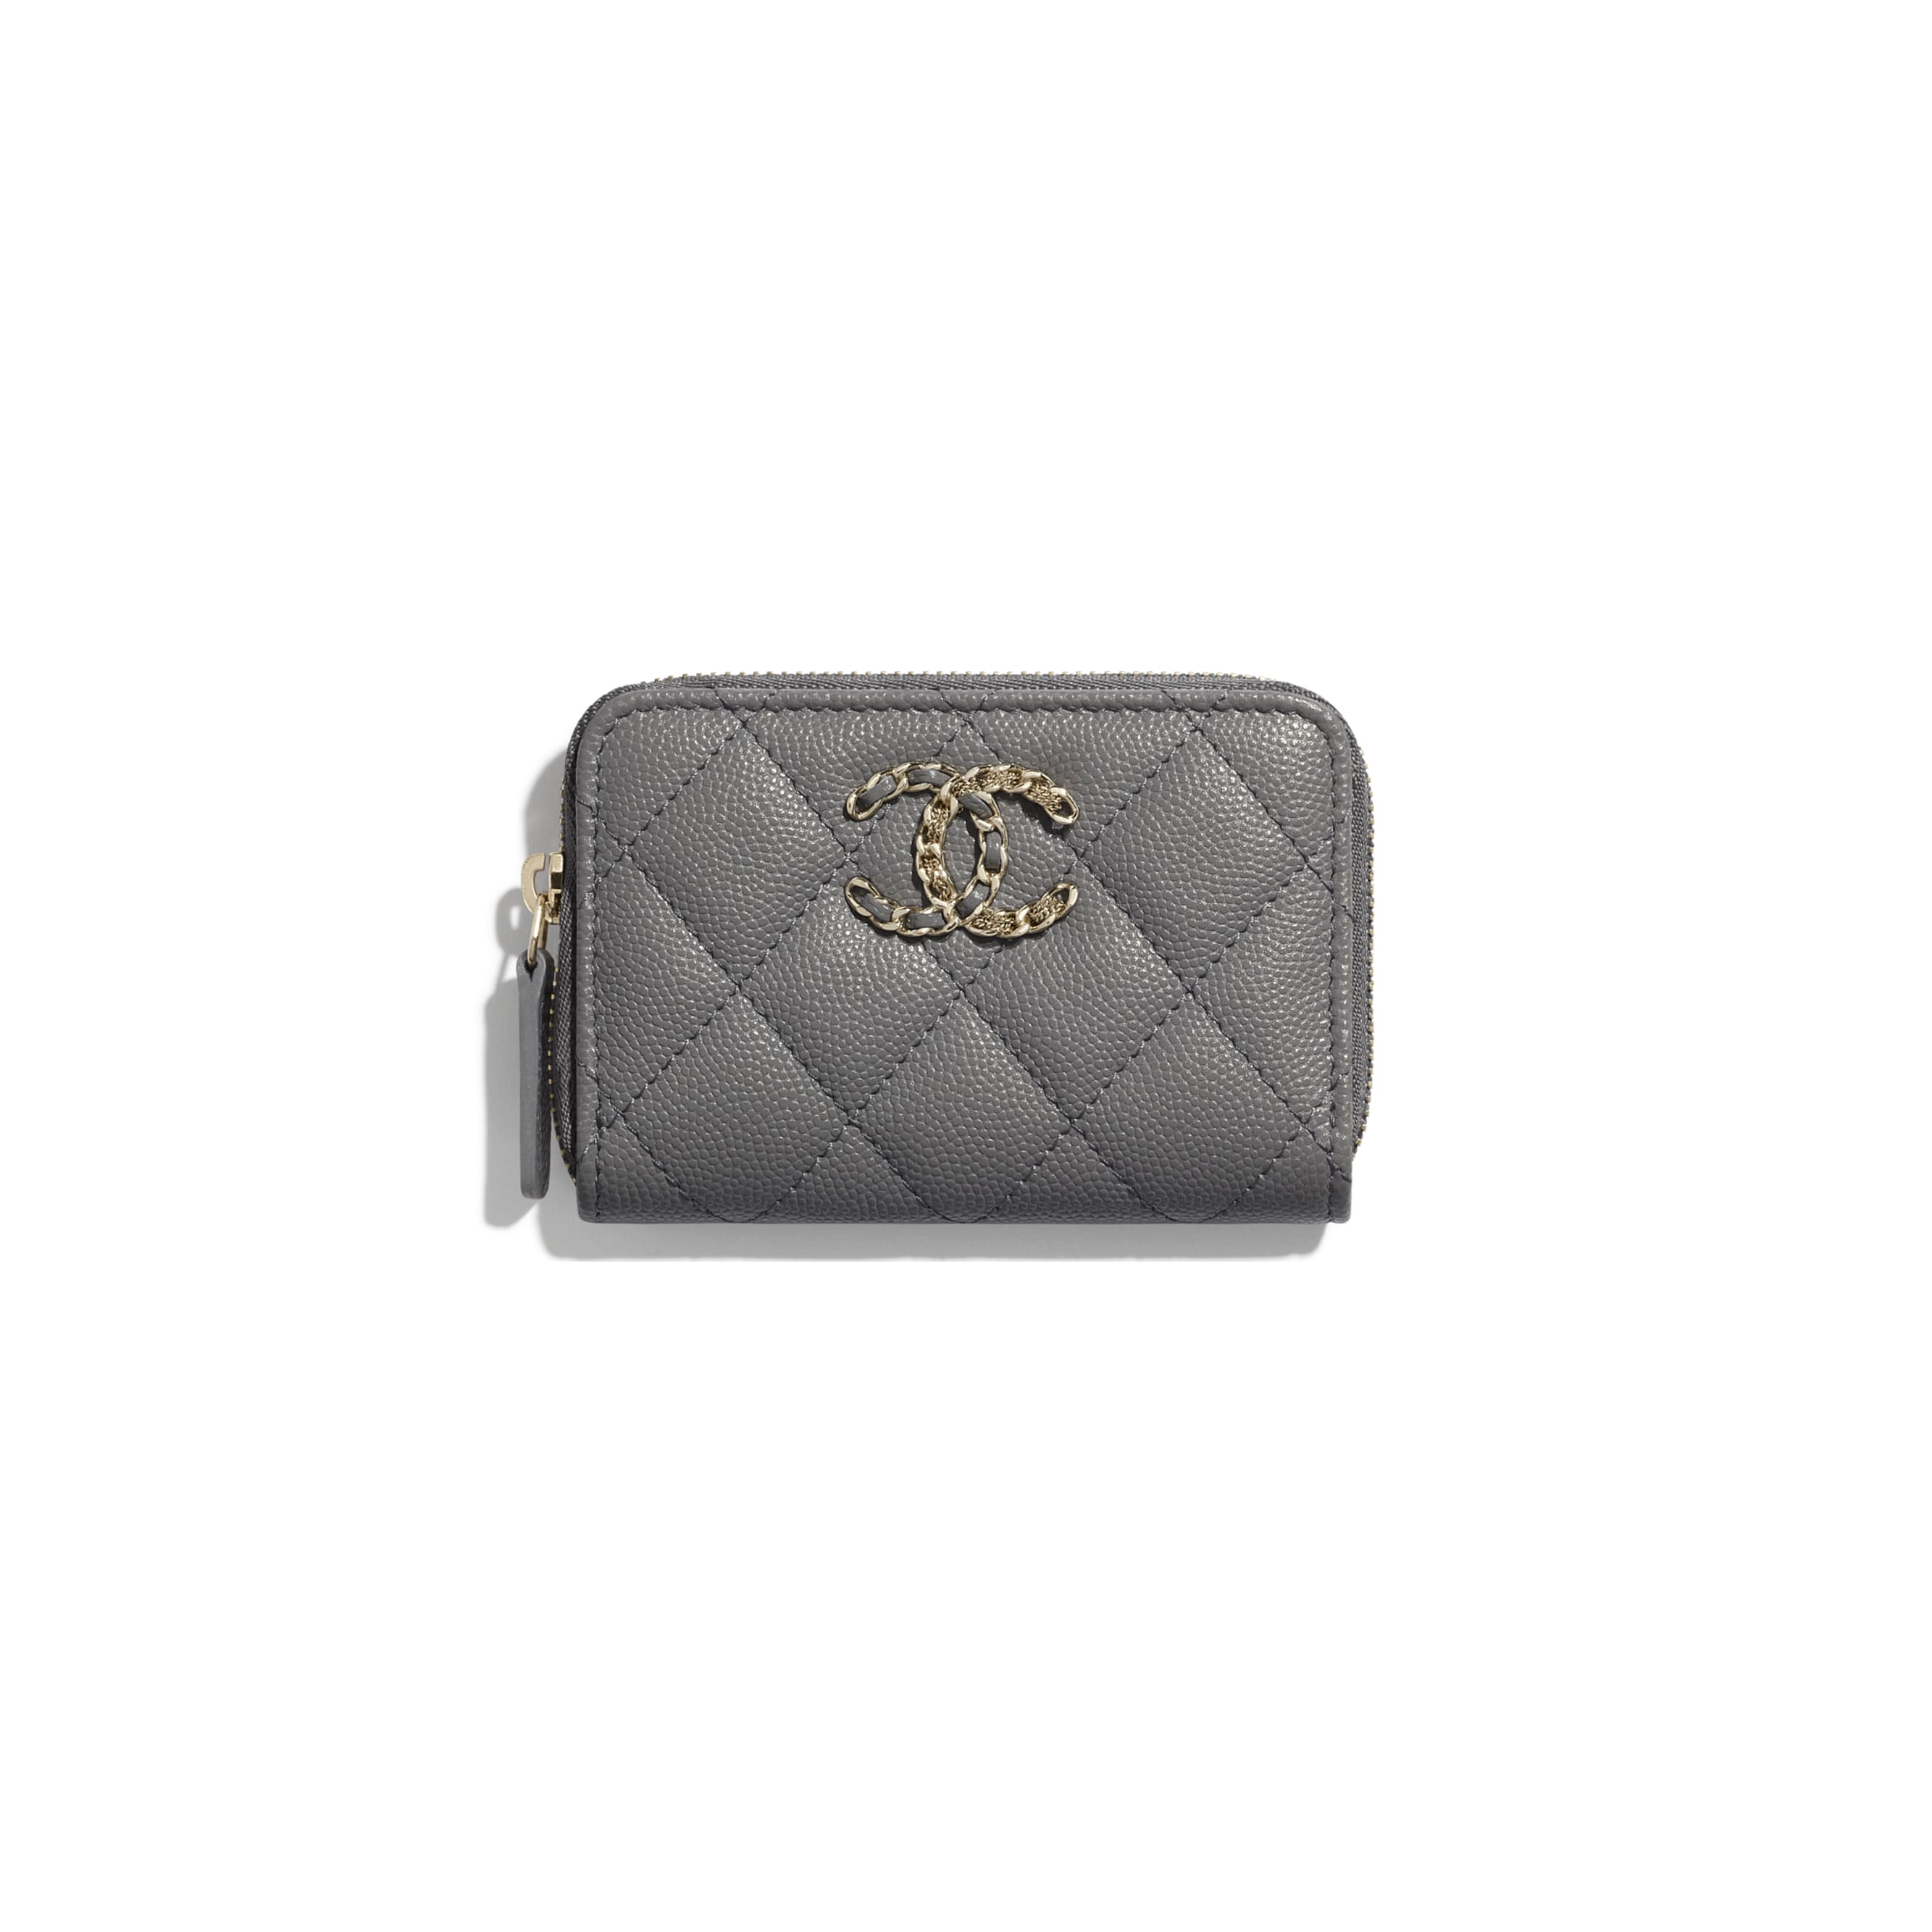 Coin Purse - Grey - Grained Calfskin & Gold-Tone Metal - CHANEL - Default view - see standard sized version